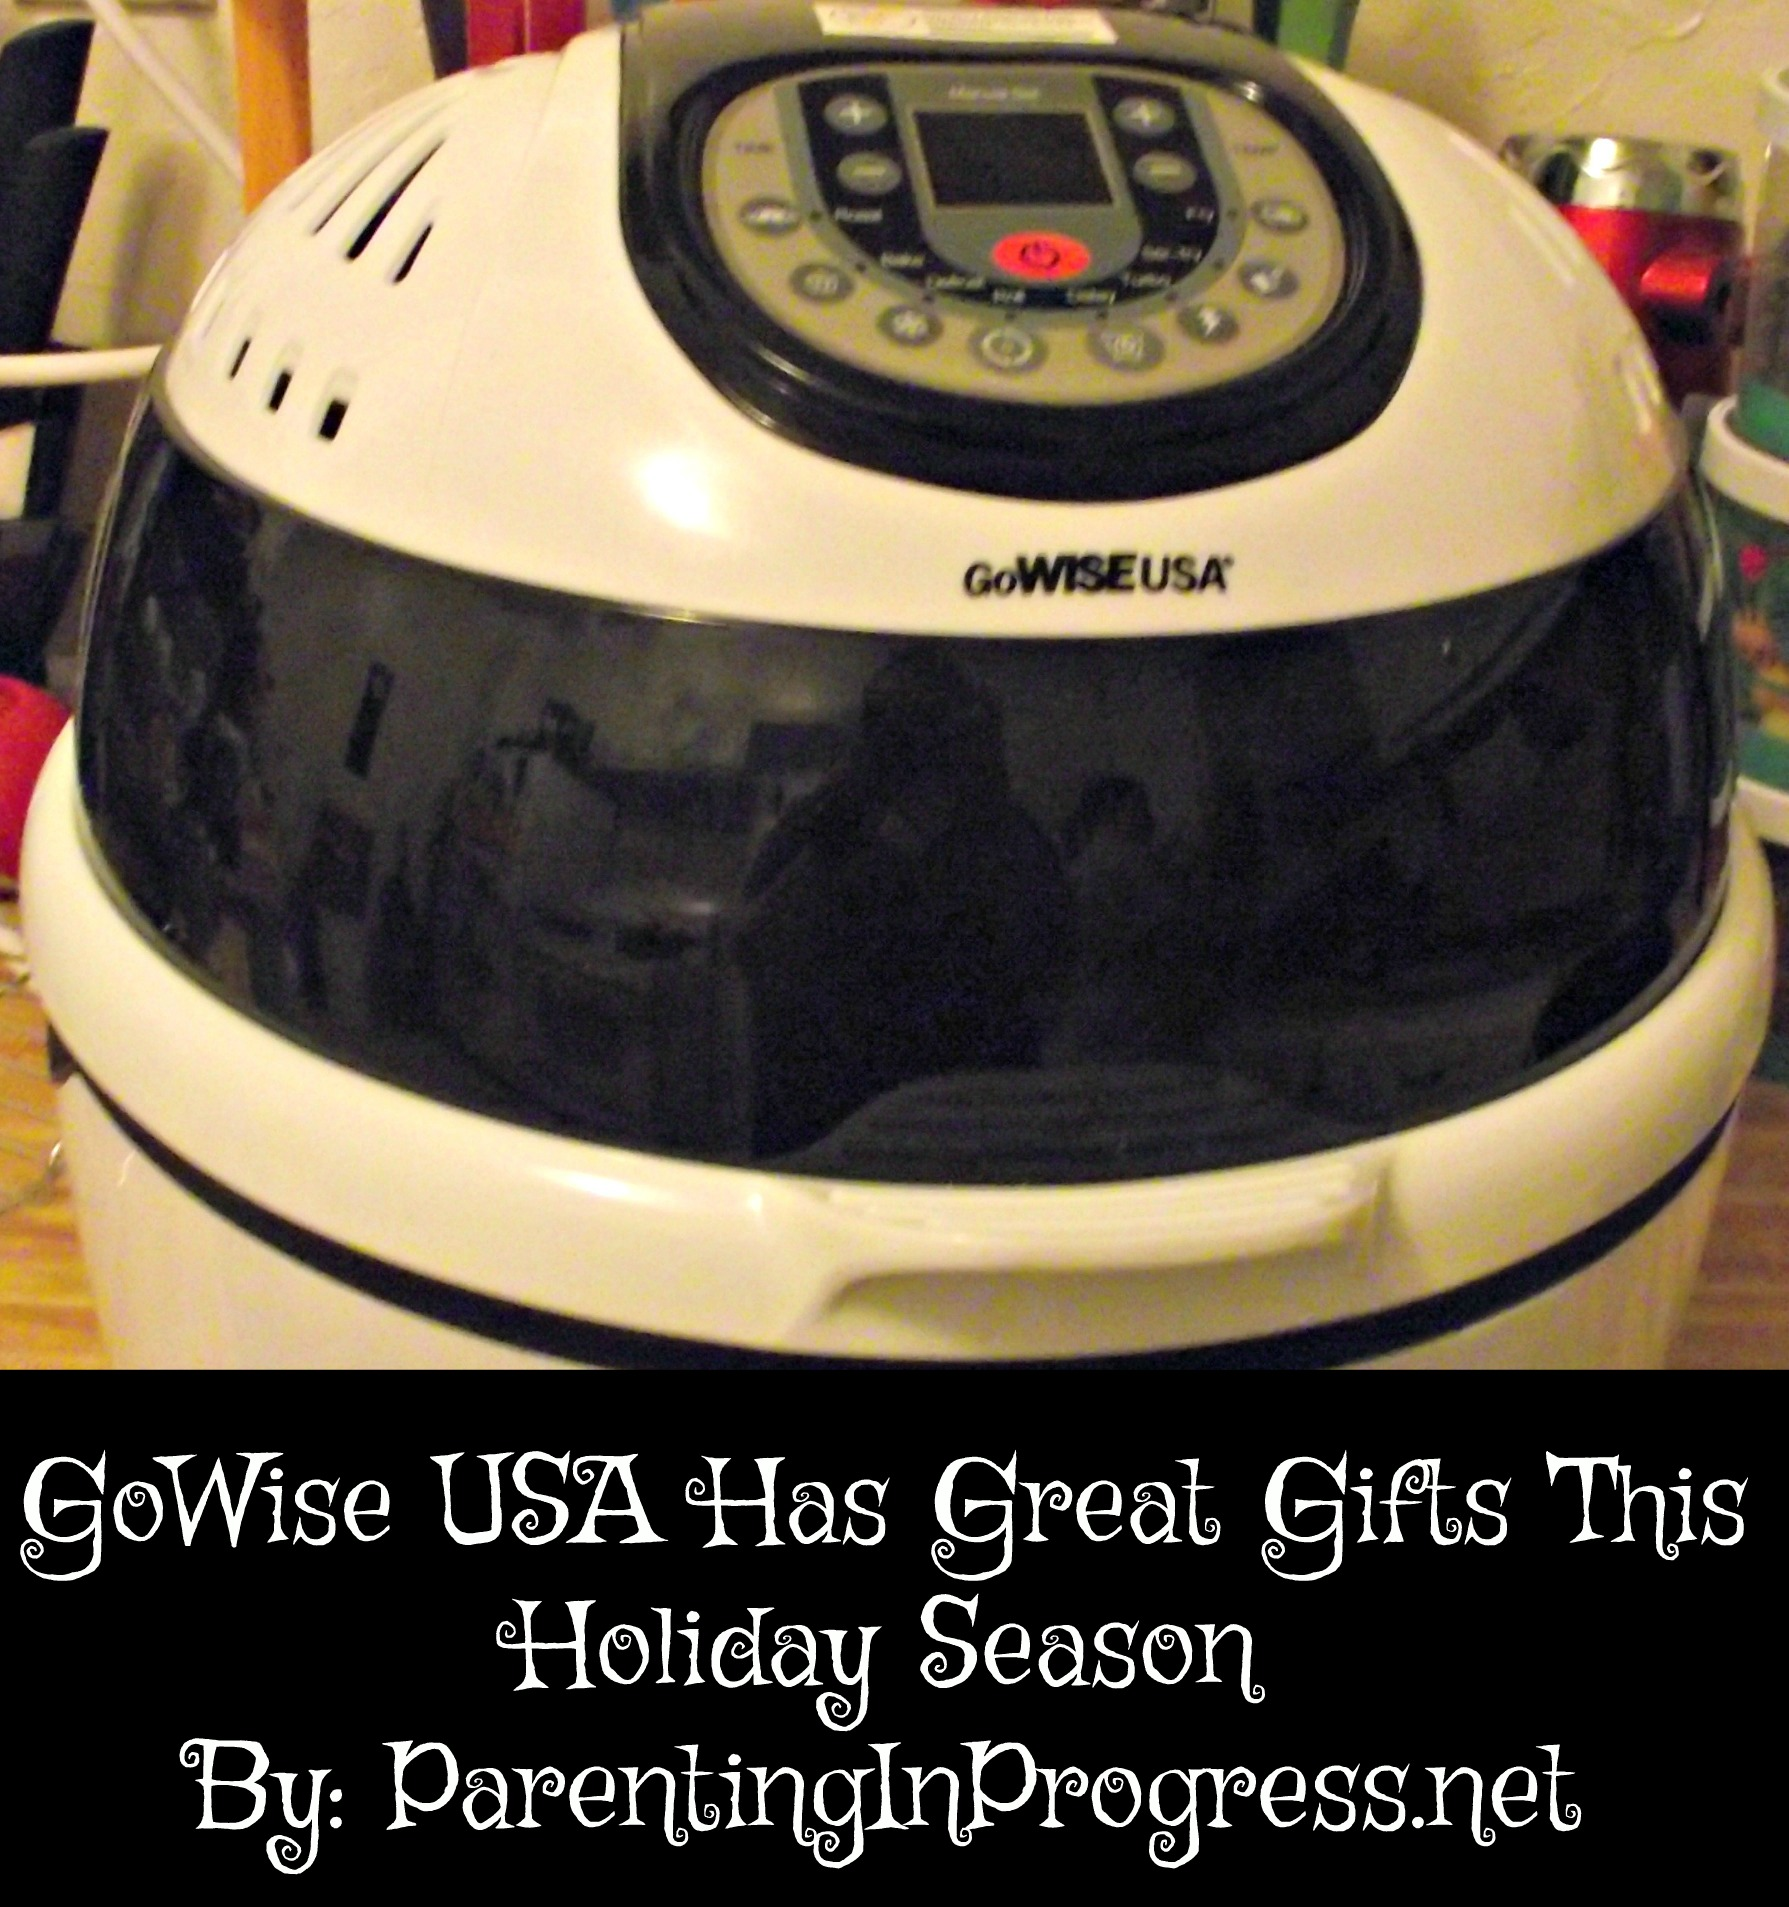 GoWise USA Has Great Gifts this Holiday Season